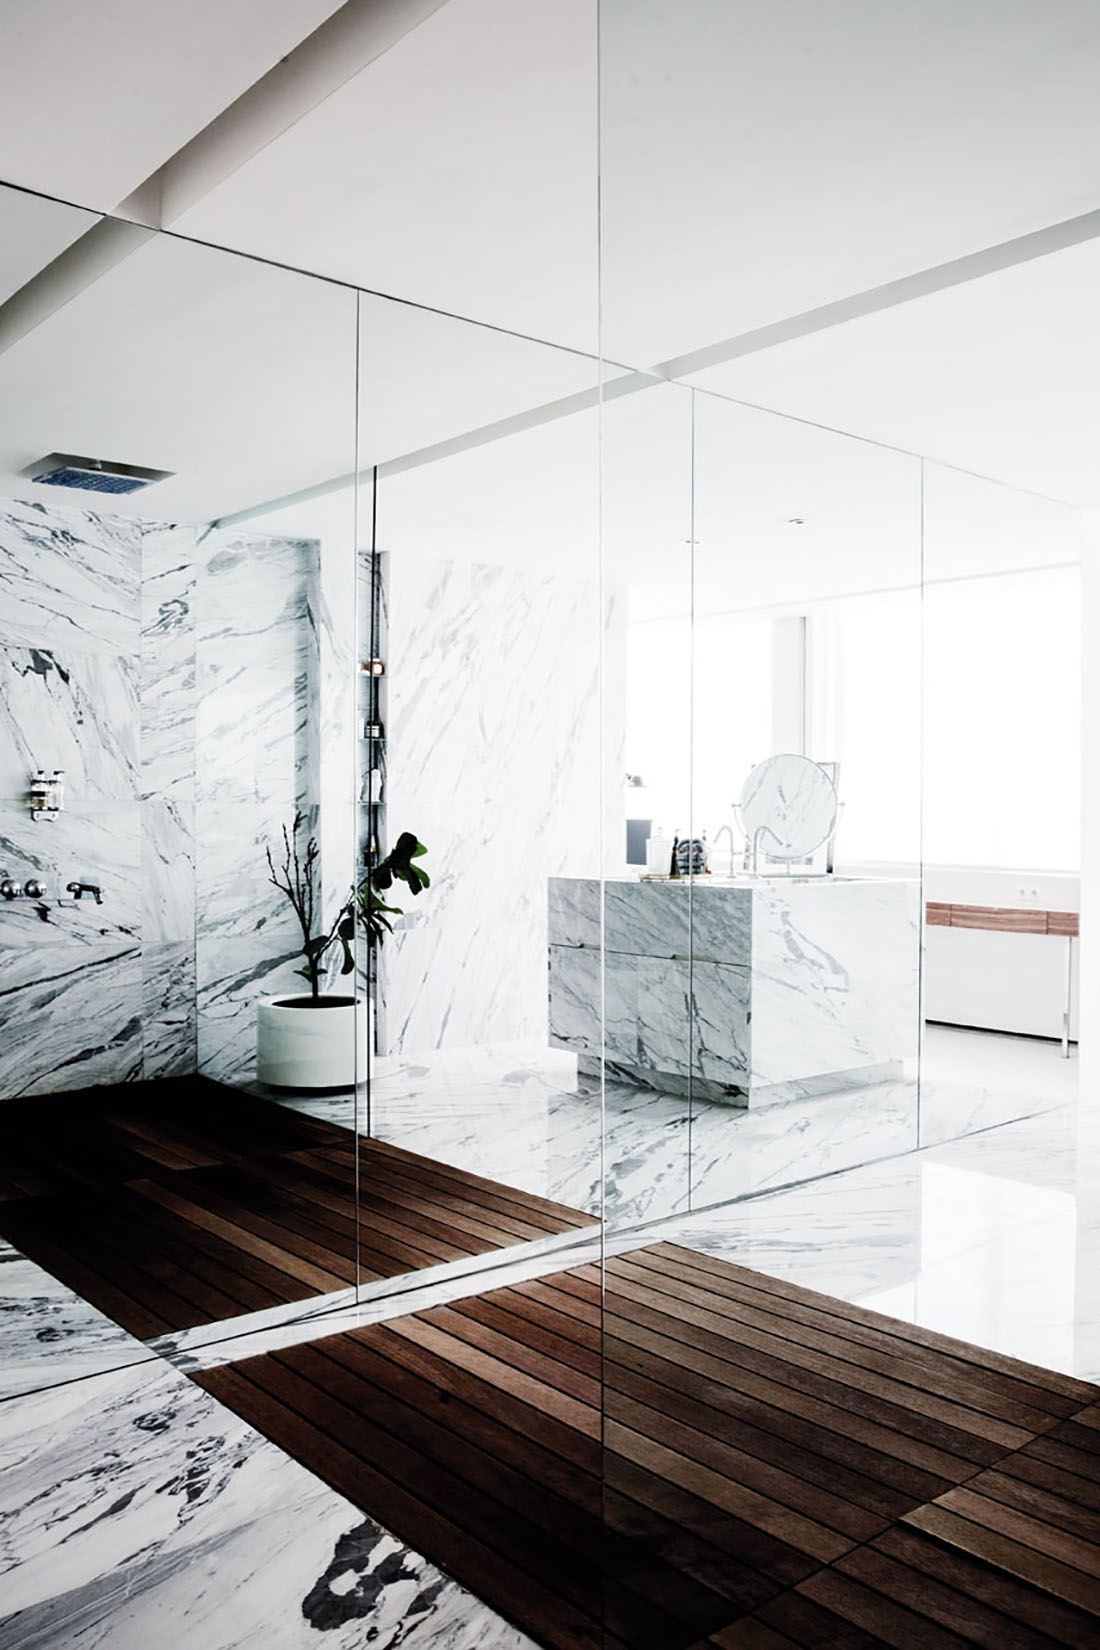 Bright white marble contrasts with rich wood flooring bathrooms